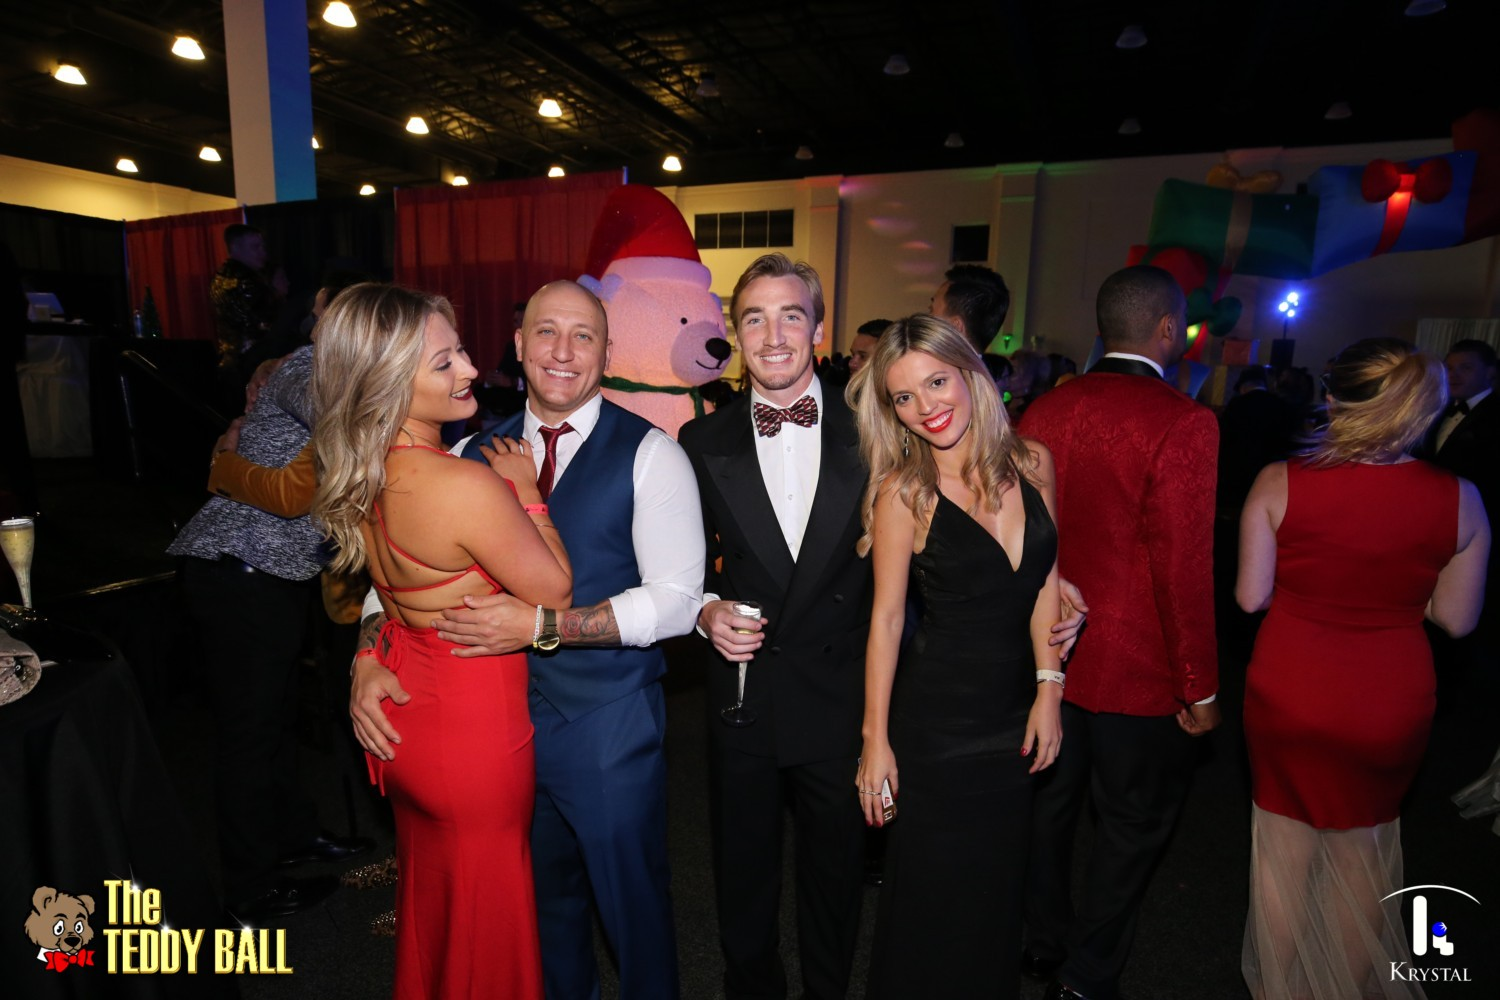 Teddy Ball 2018-Krystal-Productions-1-BE0U8980-60.jpg